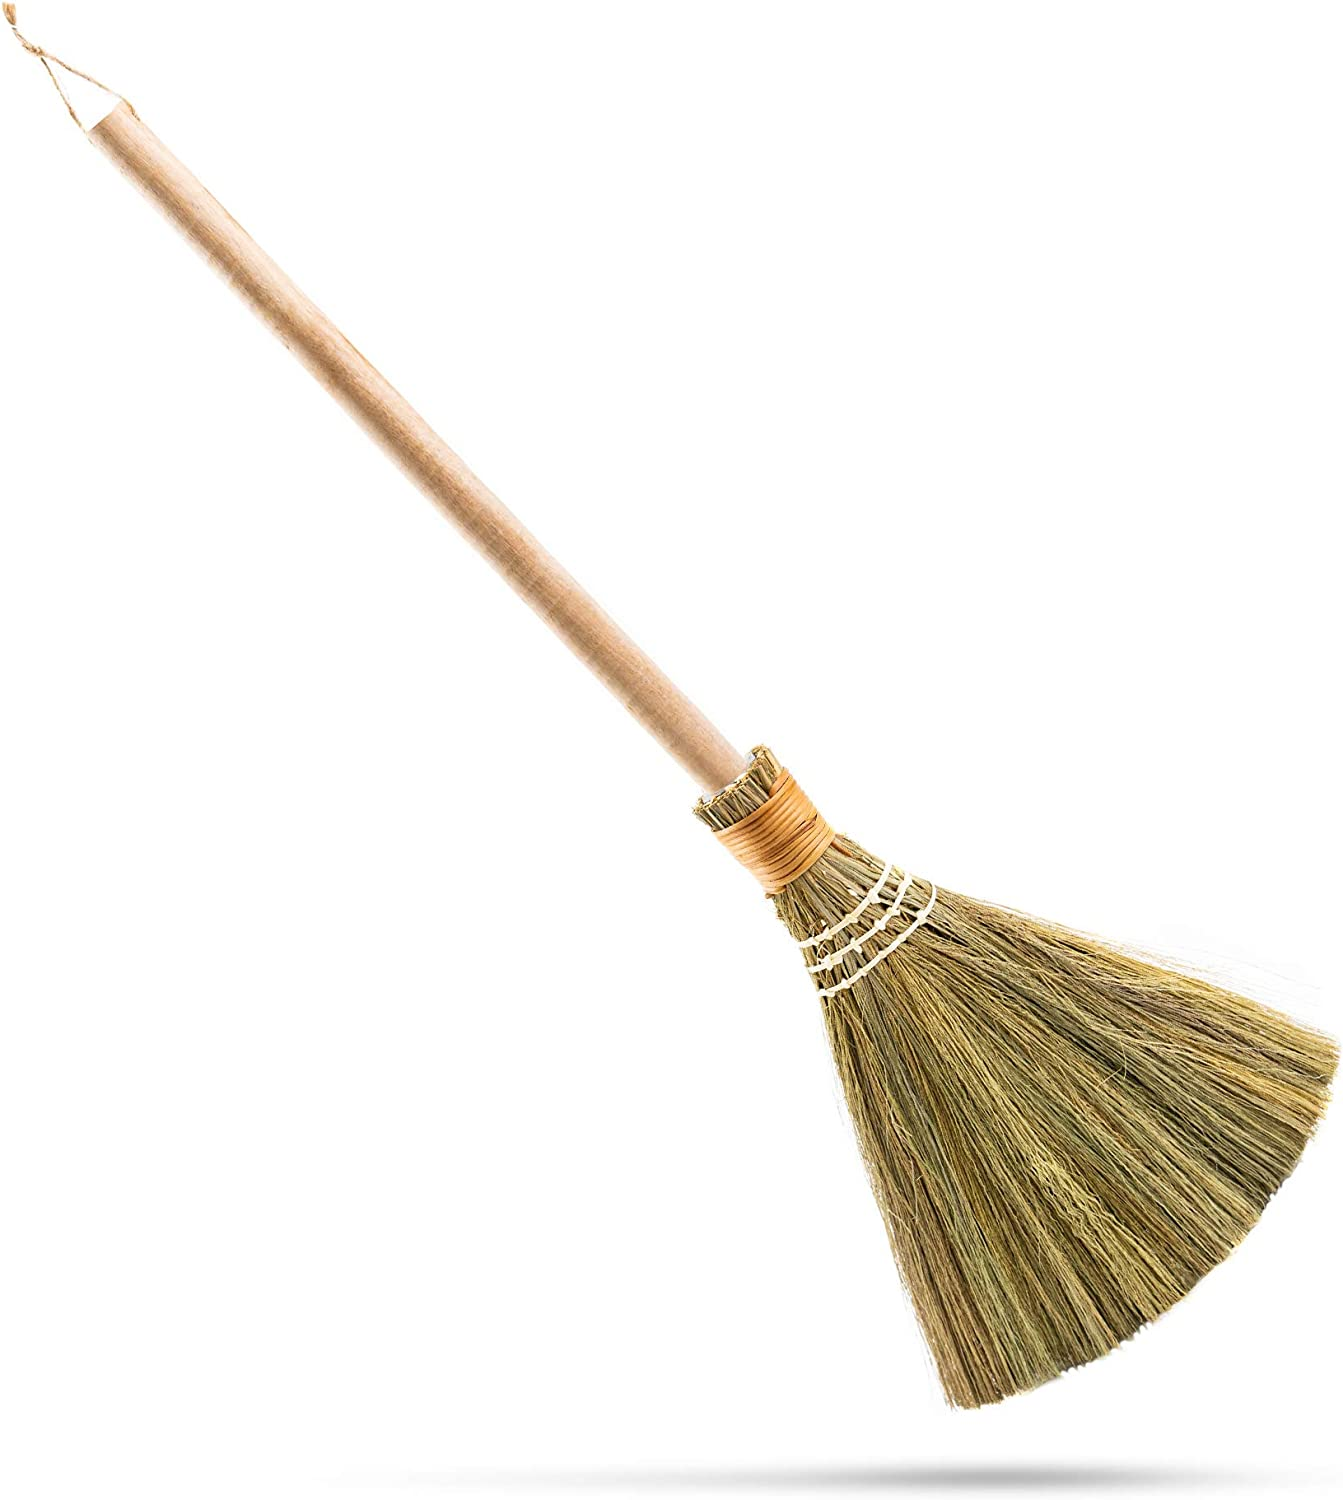 """HNC ECOLIFE Small Natural Whisk Sweeping Hand Handle Broom - Vietnamese Straw Soft Broom for Cleaning Dustpan Indoor - Outdoor - Decorative Brooms - Wooden Handle - 9.06'' Width, 27.55"""" Length : Health & Household"""